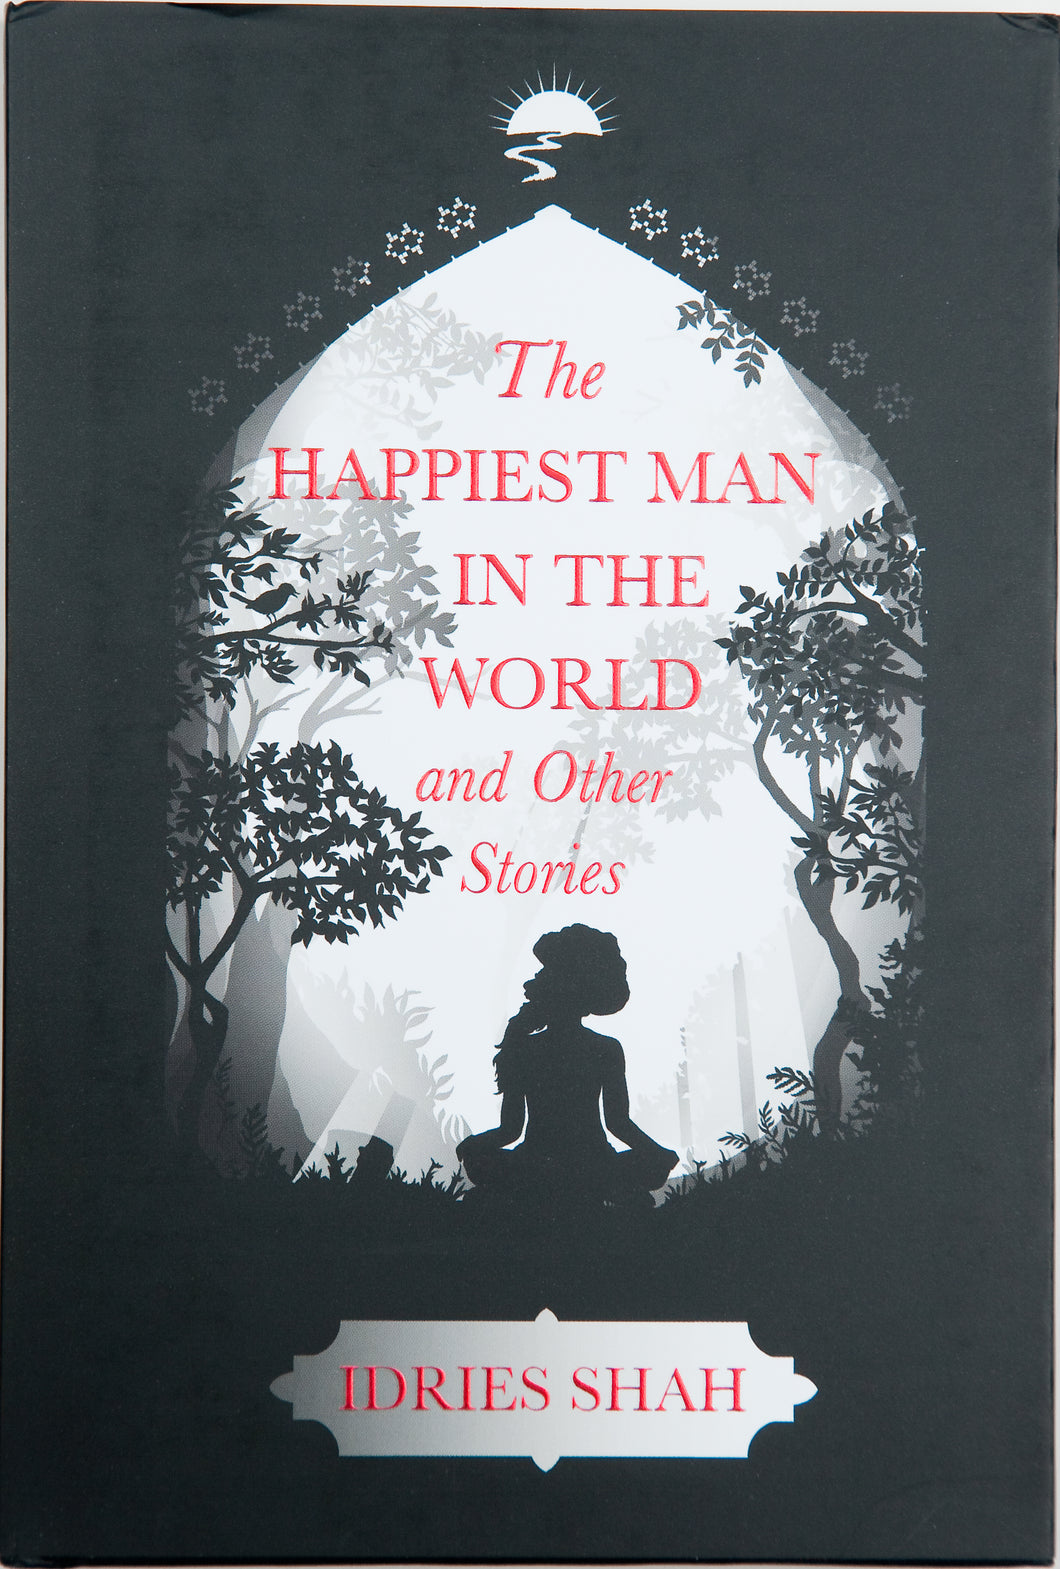 The Happiest Man in the World and Other Stories Limited Edition Hardcover